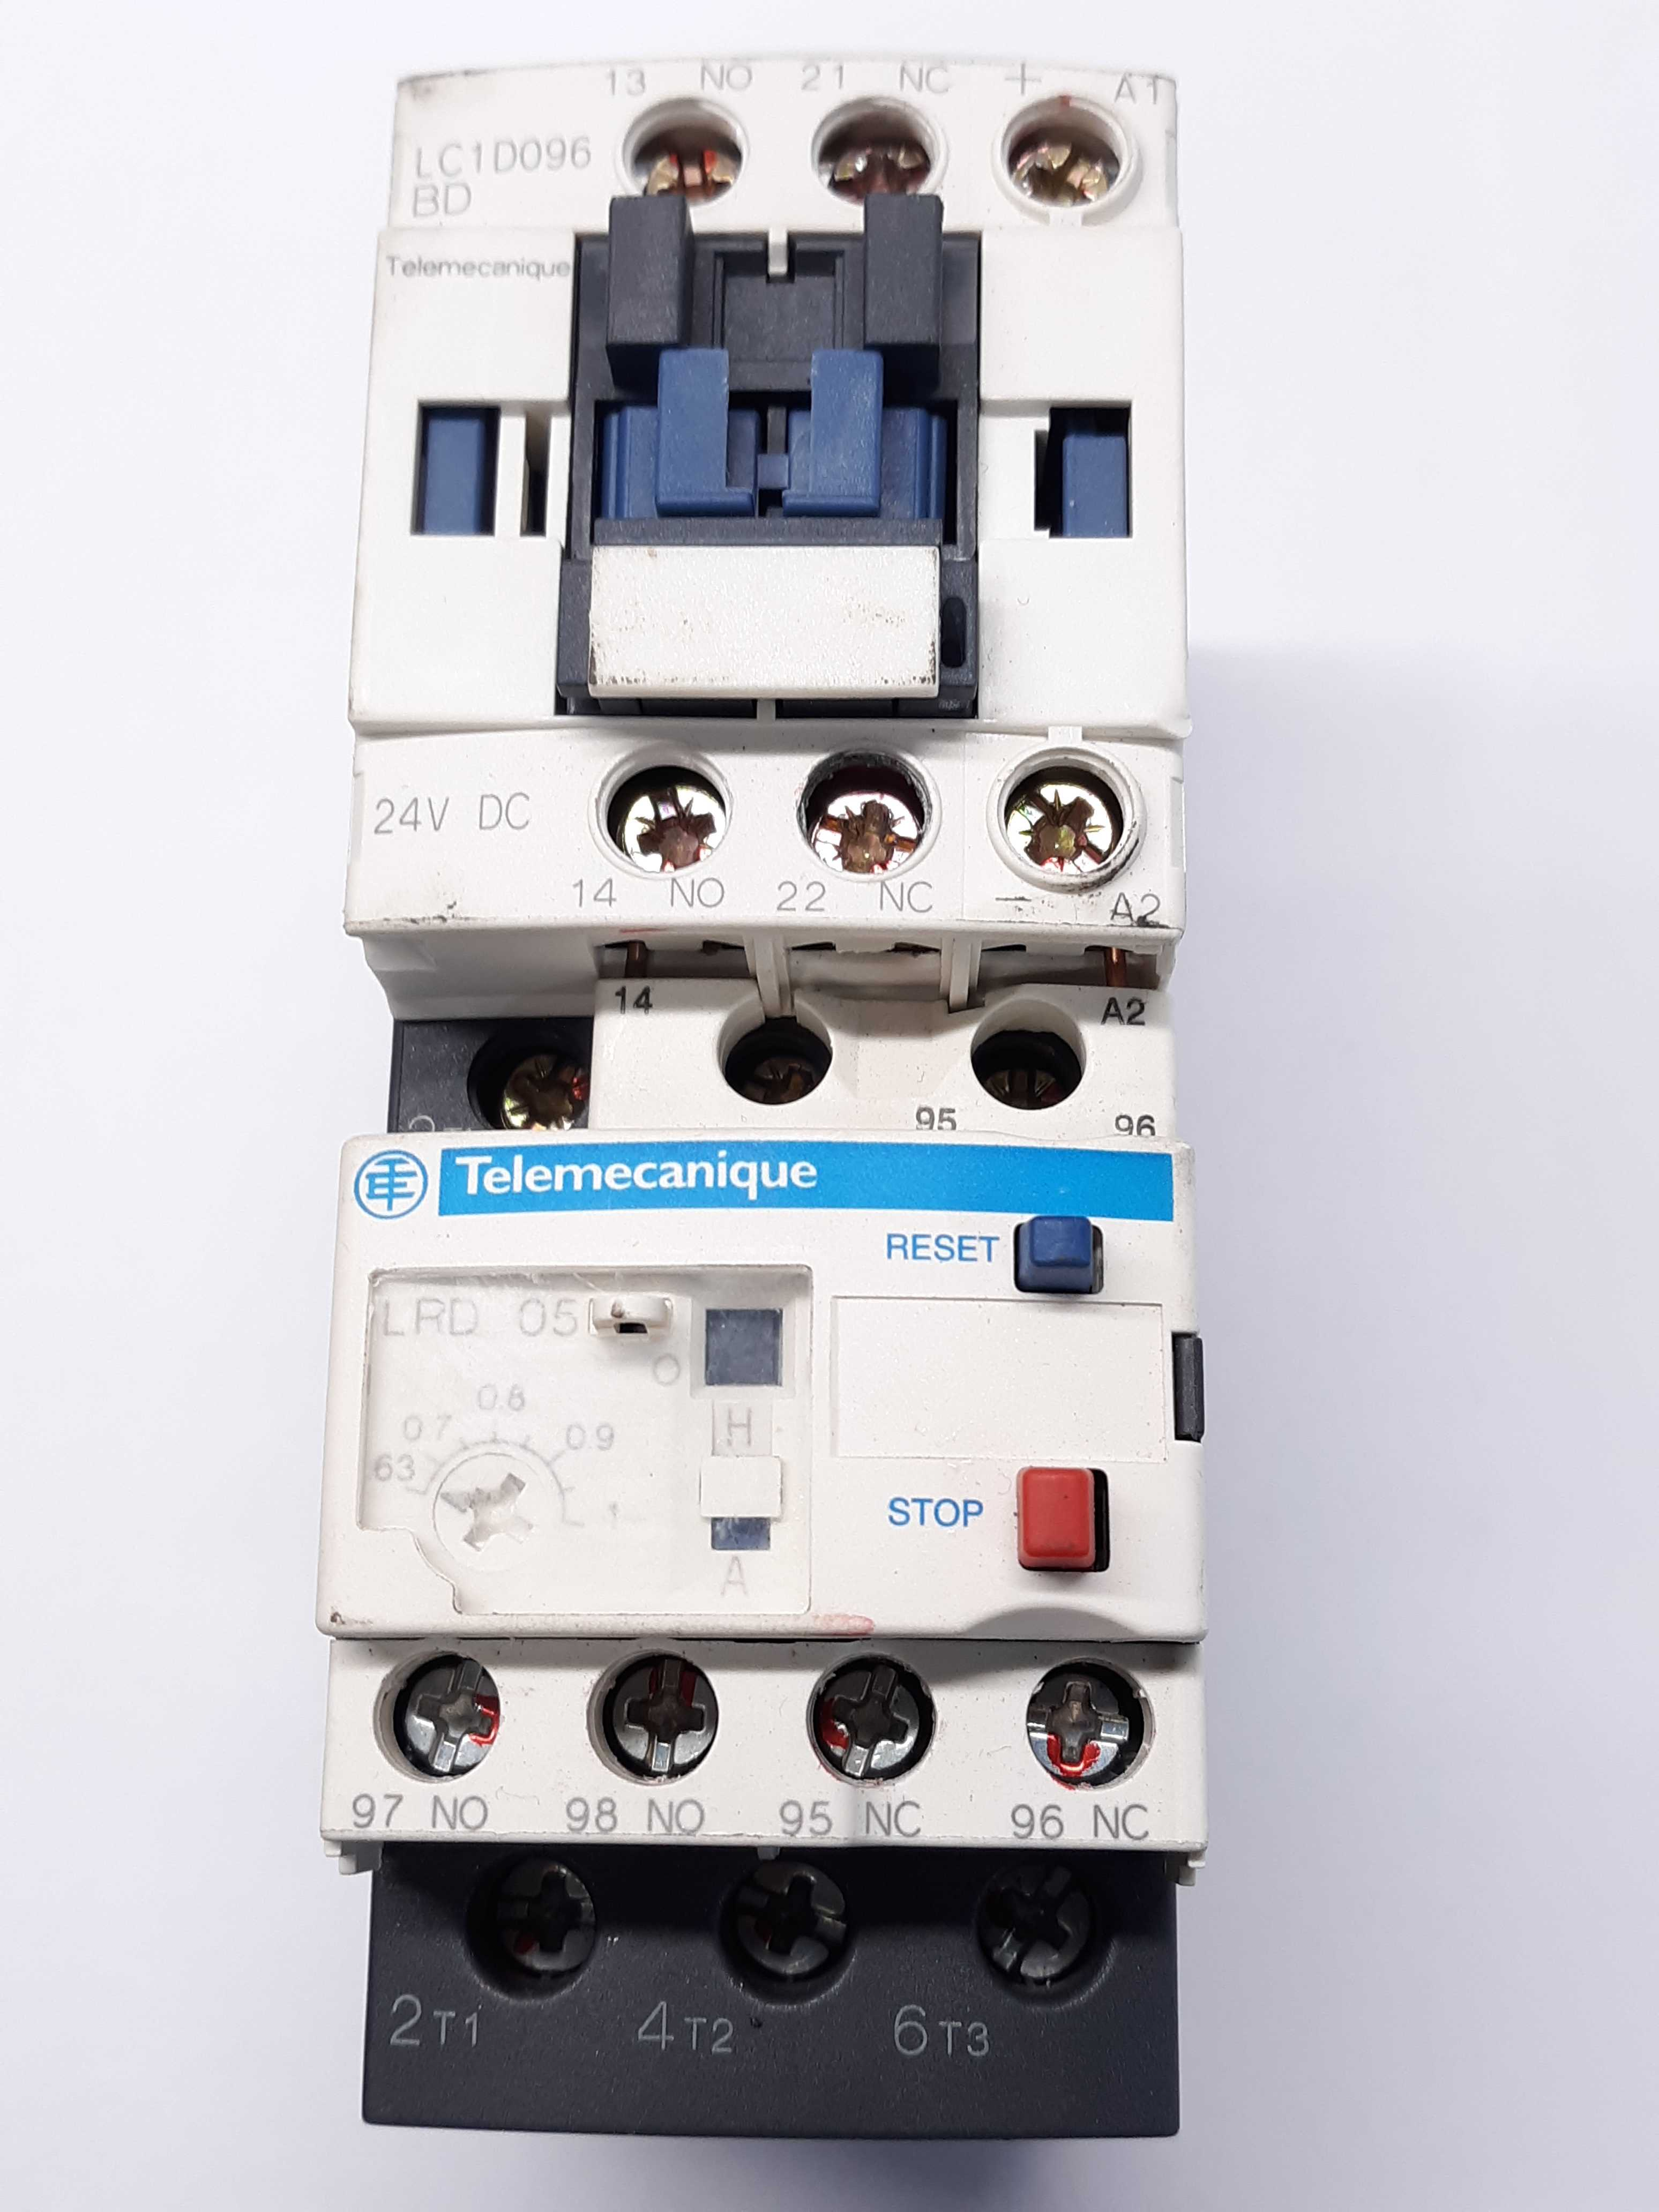 Telemecanique LC1D096BD Contactor w/ LRD 05 Relay 0.63-1A LAD4TBDL